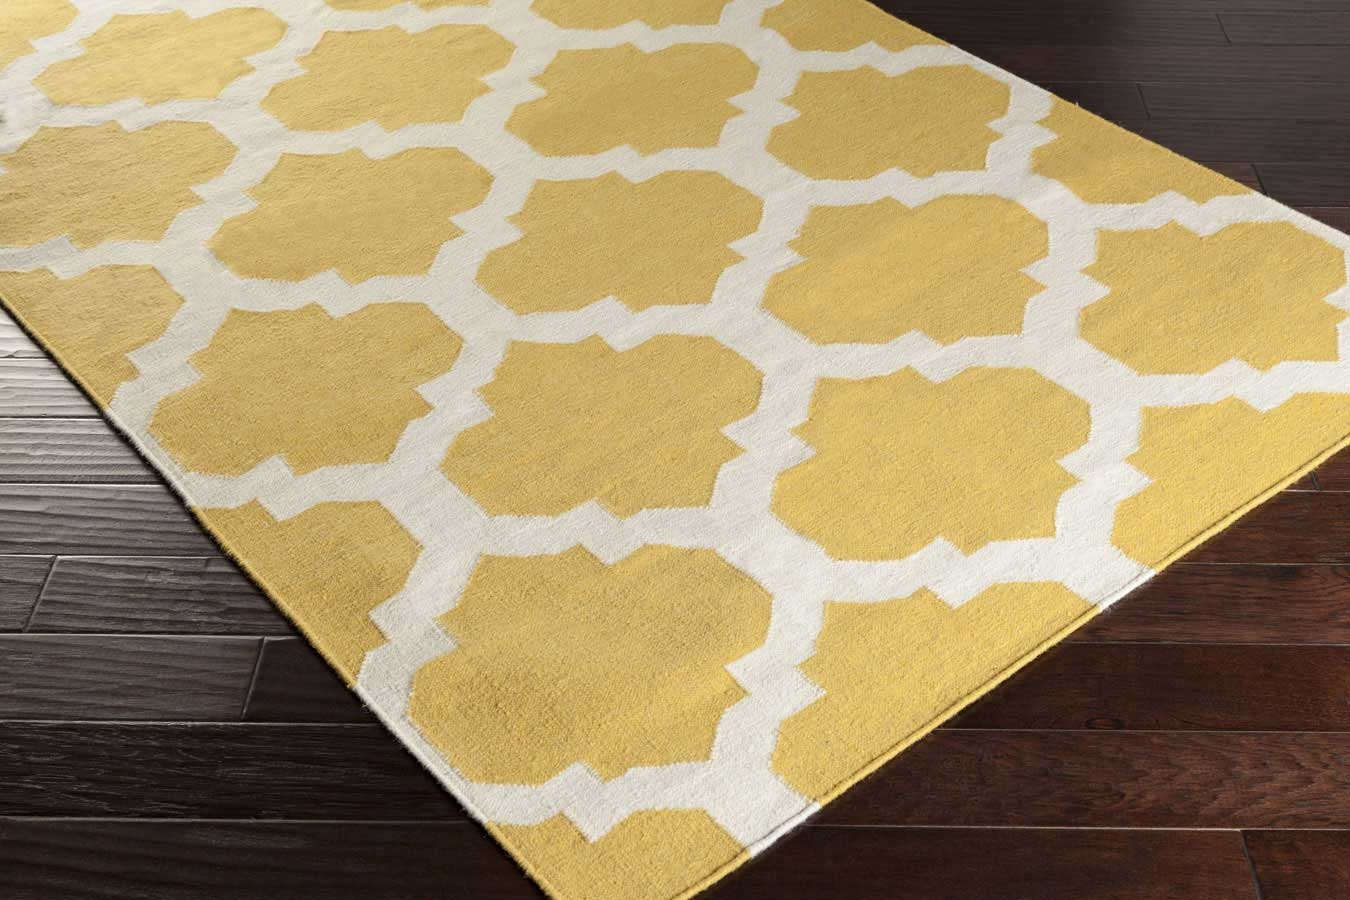 Artistic Weavers York Harlow Awhd1035 Yellow White Area Rug